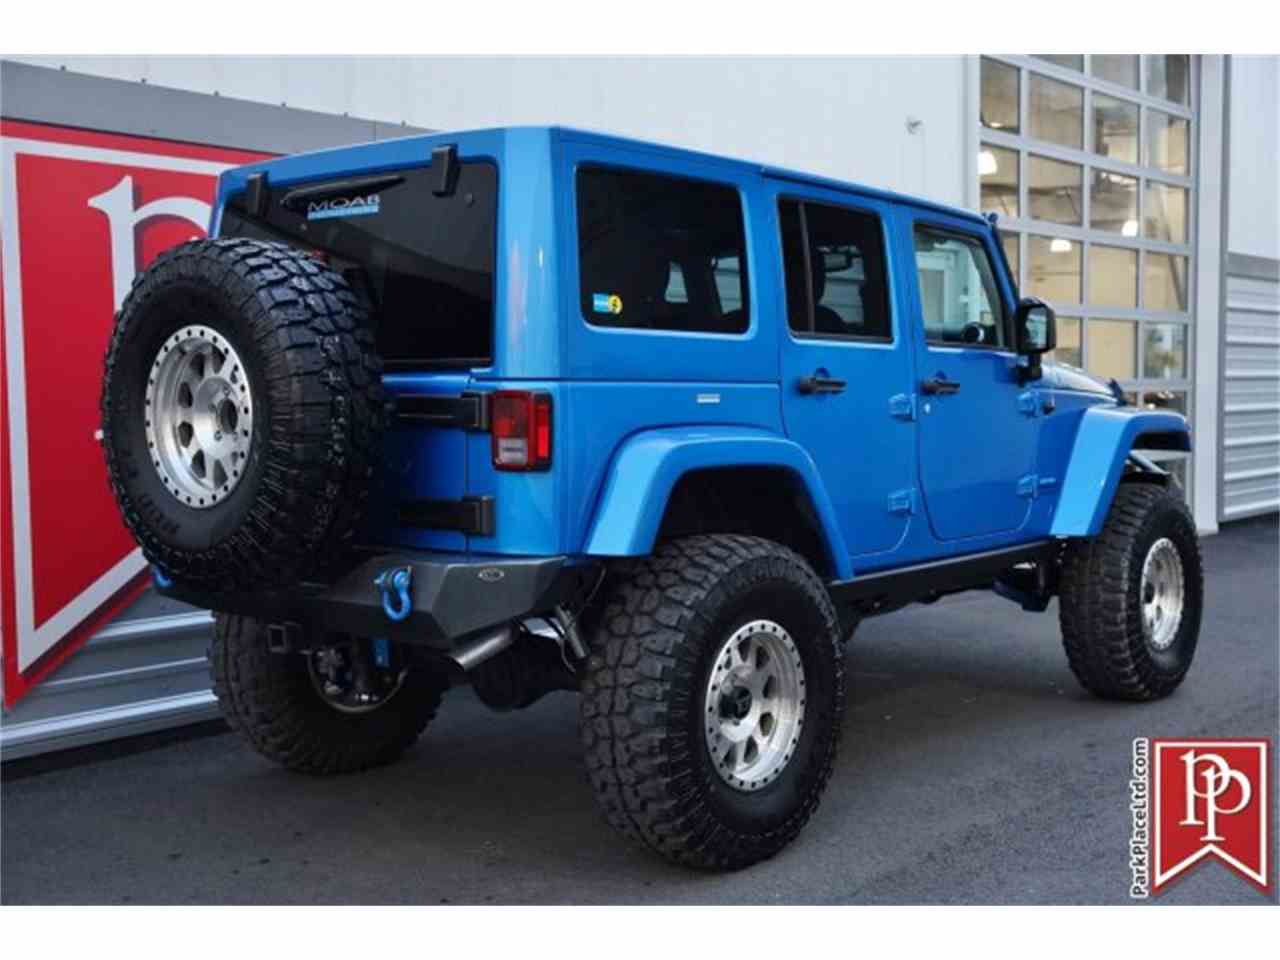 2016 jeep wrangler unlimited rubicon for  | classiccars